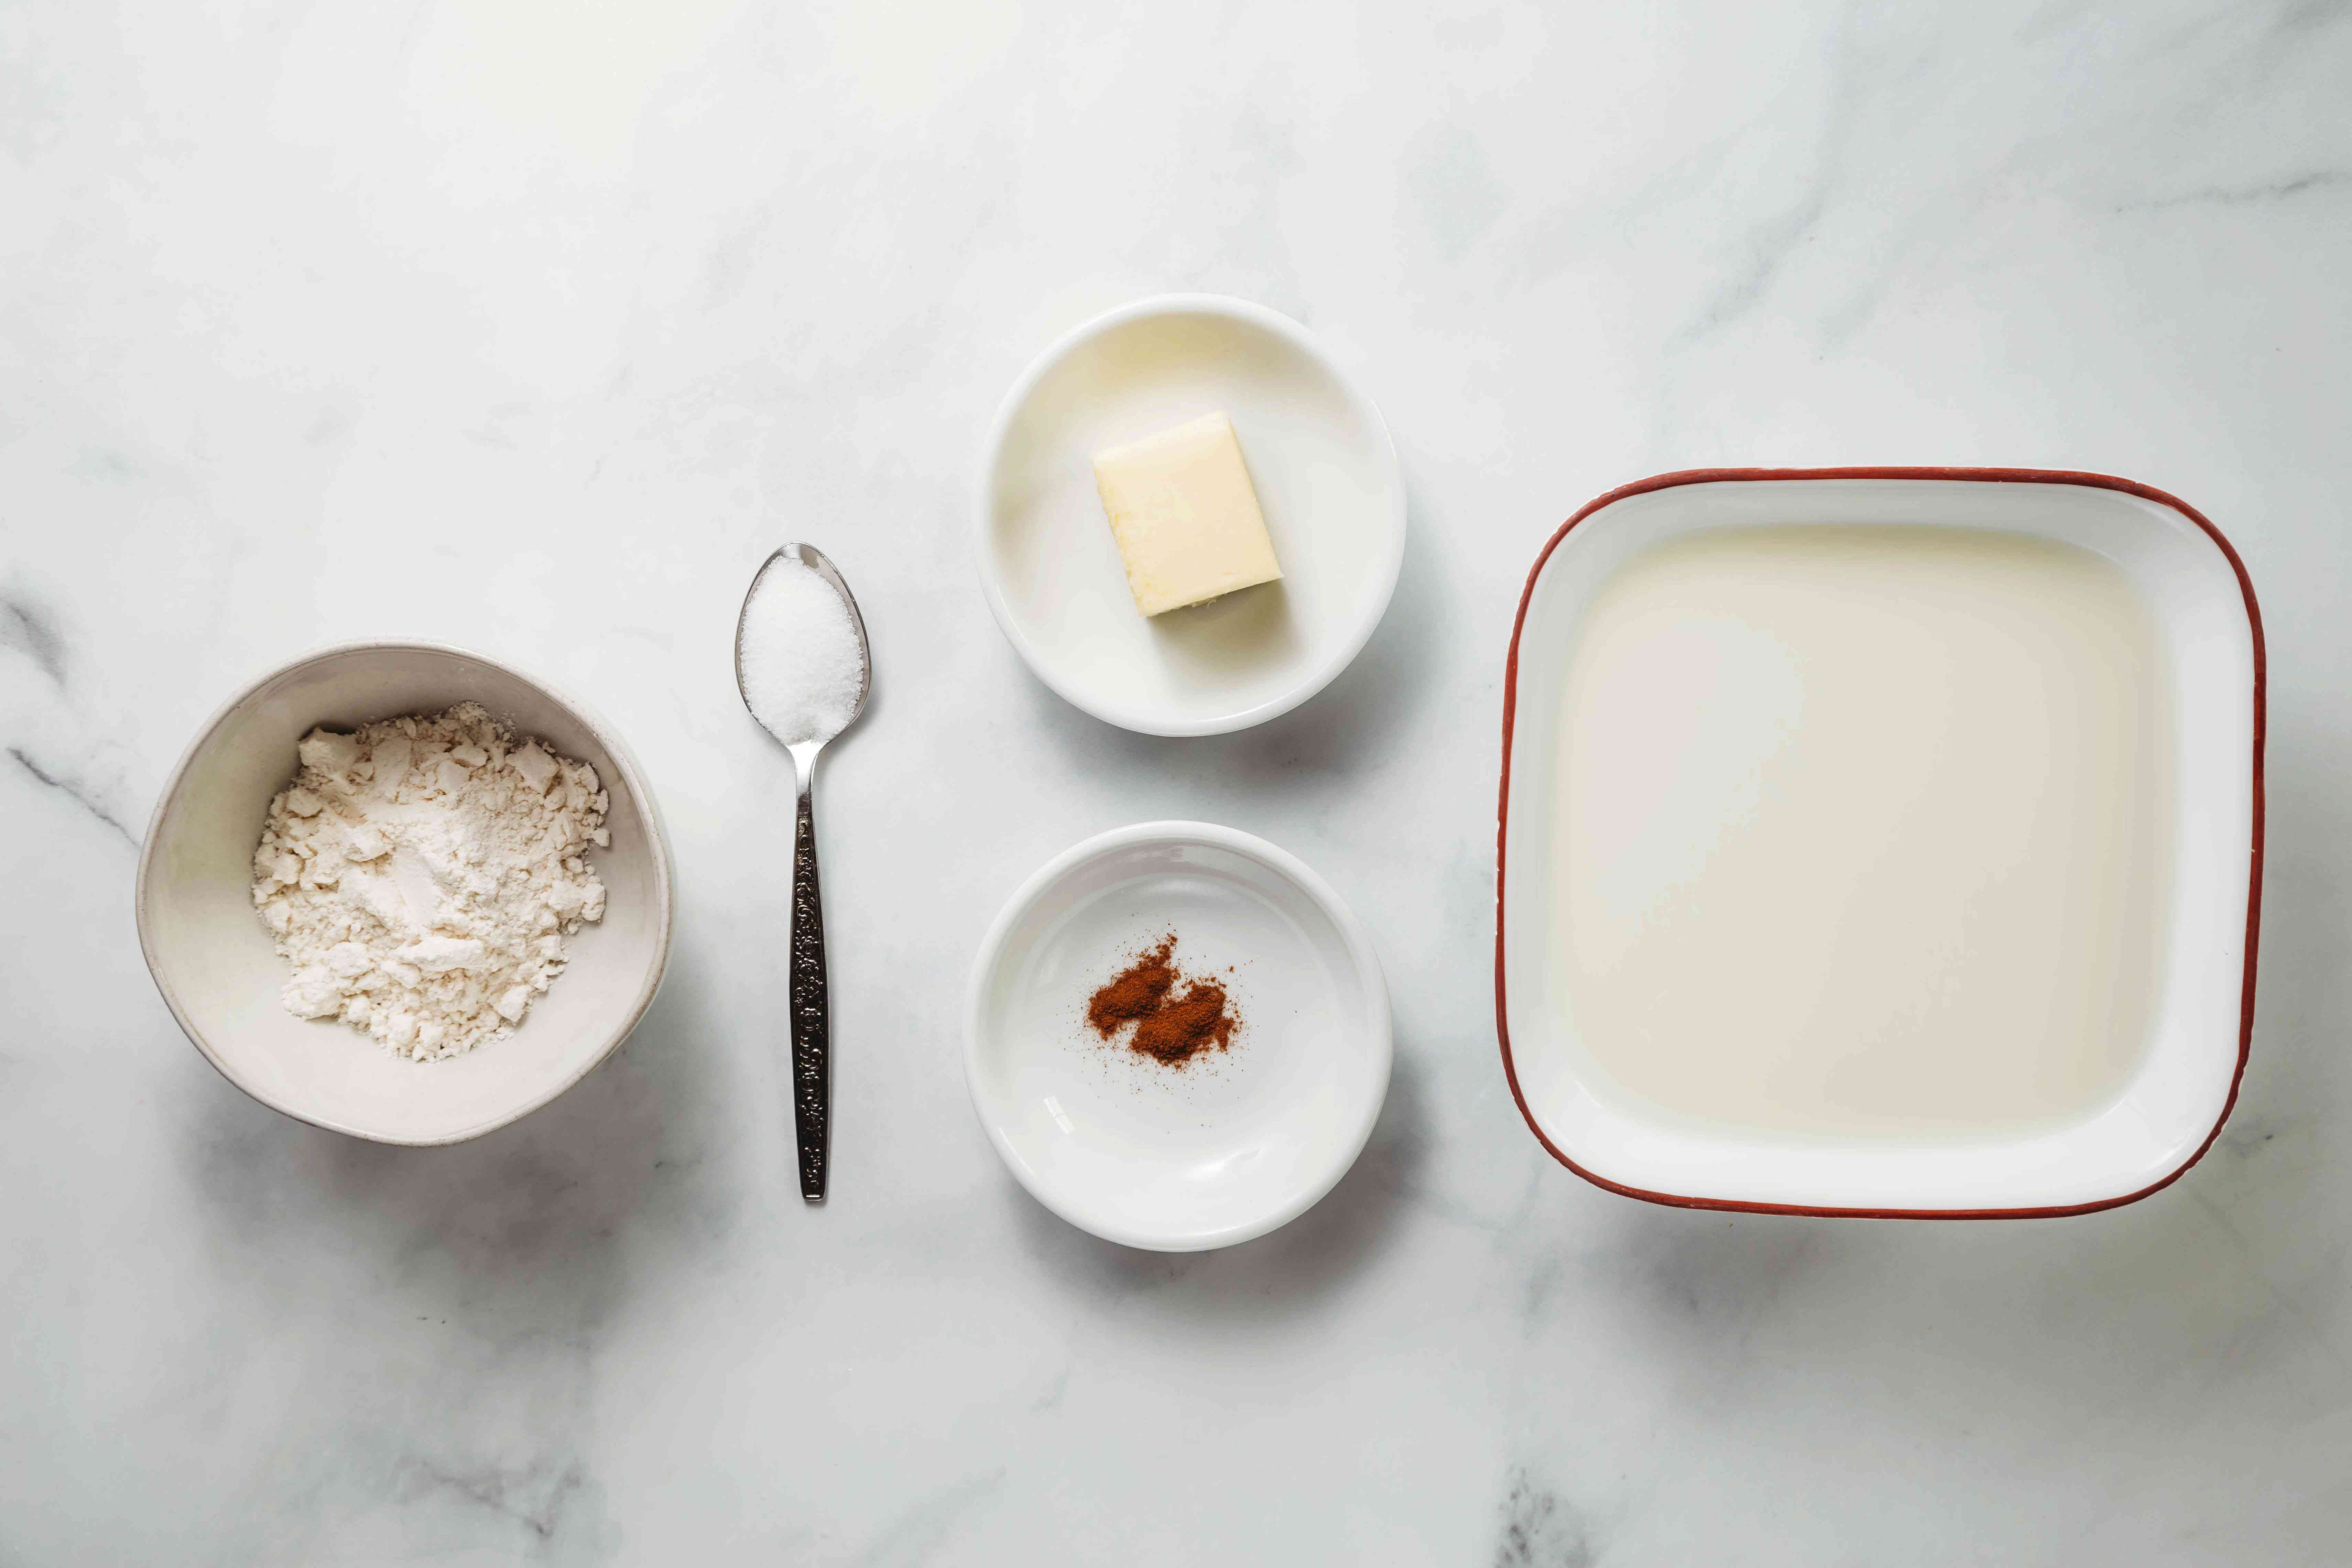 Ingredients for making the béchamel sauce